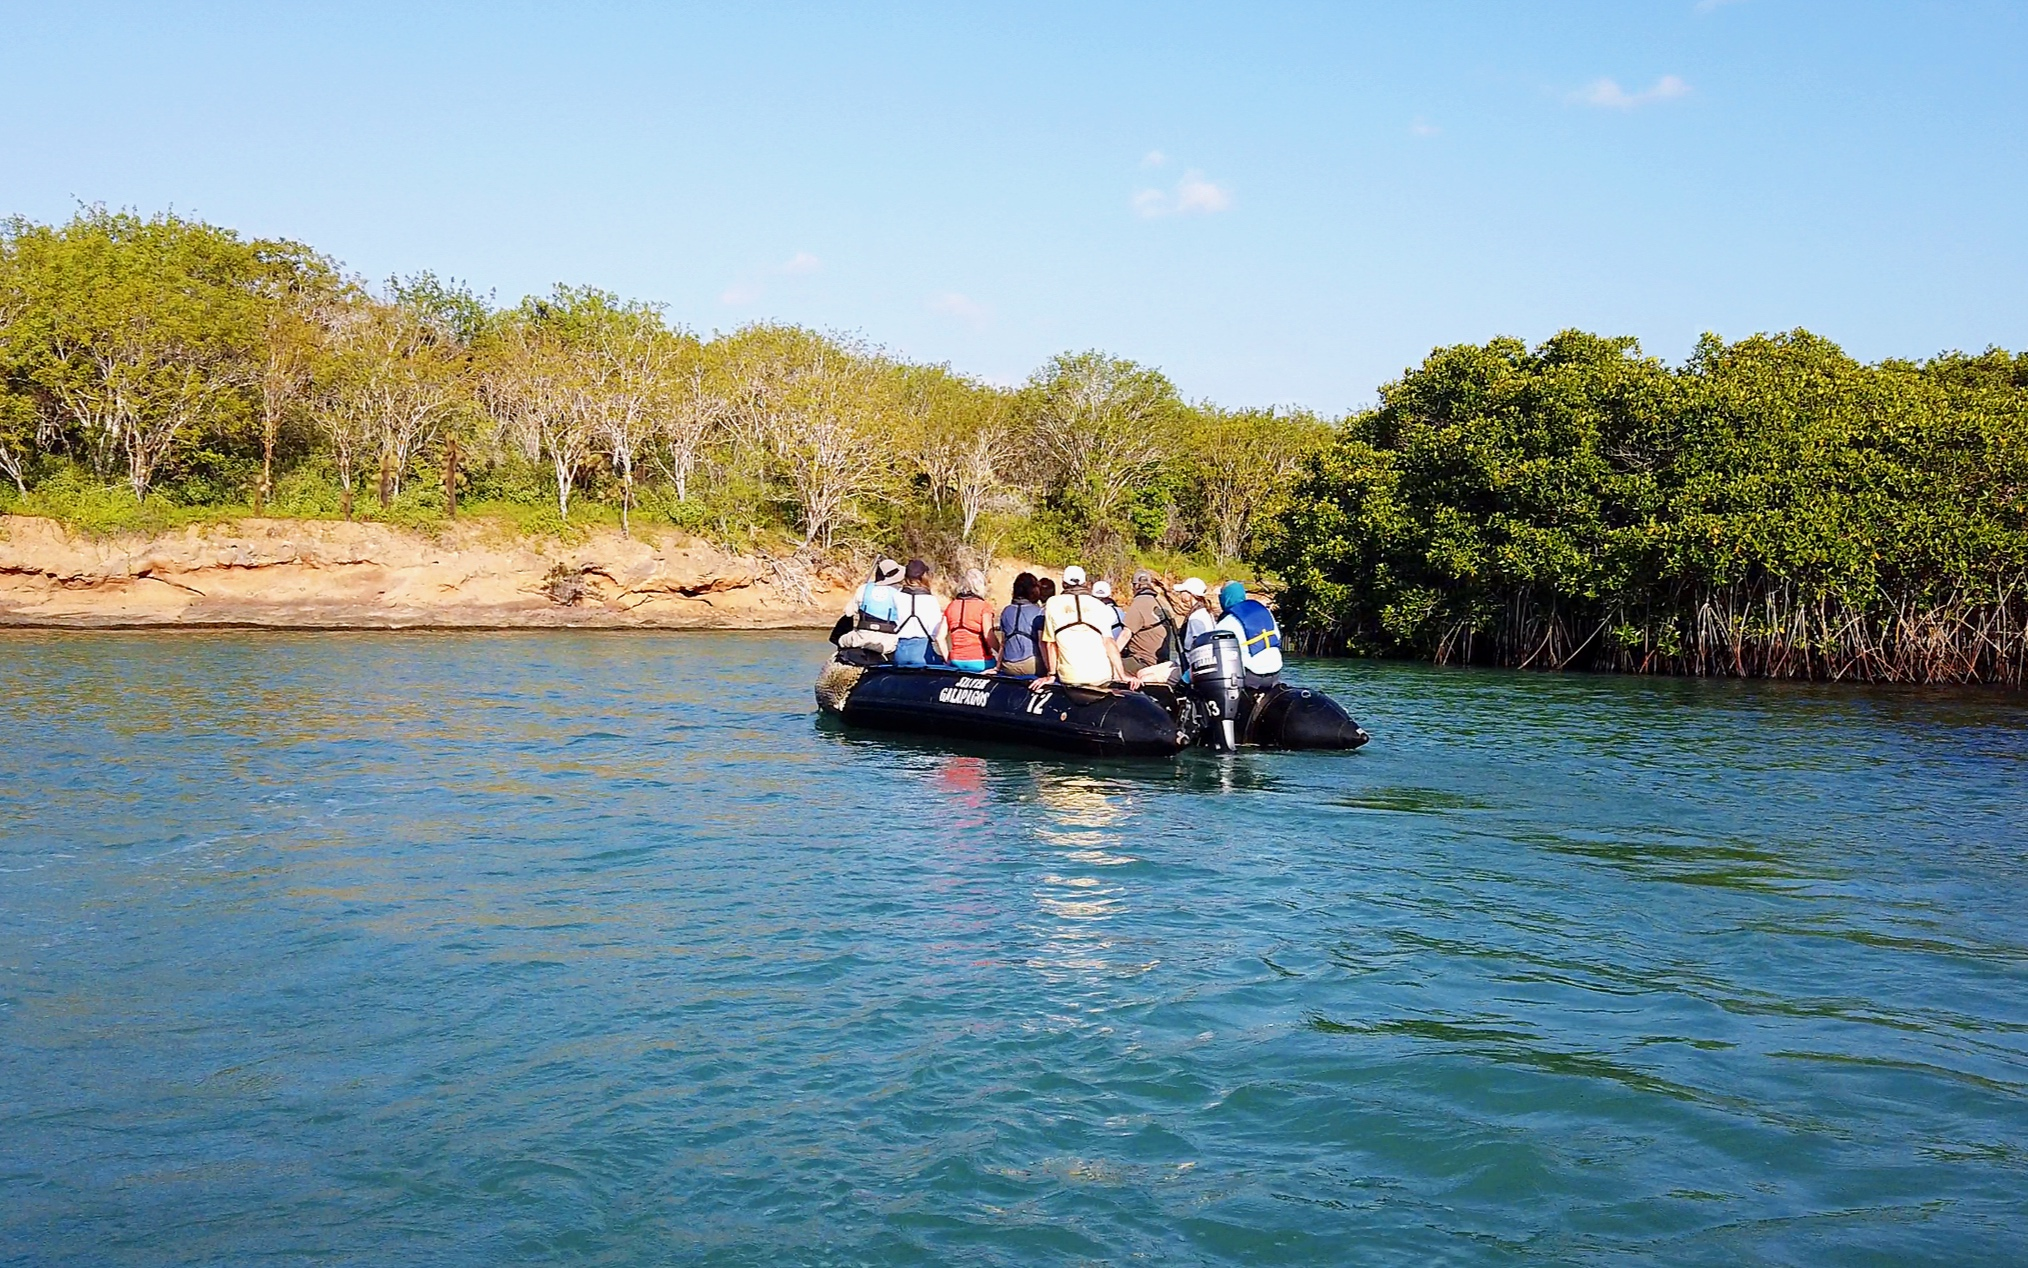 This afternoons zodiac cruise around the mangrove lagoons - a nursery for baby sharks.